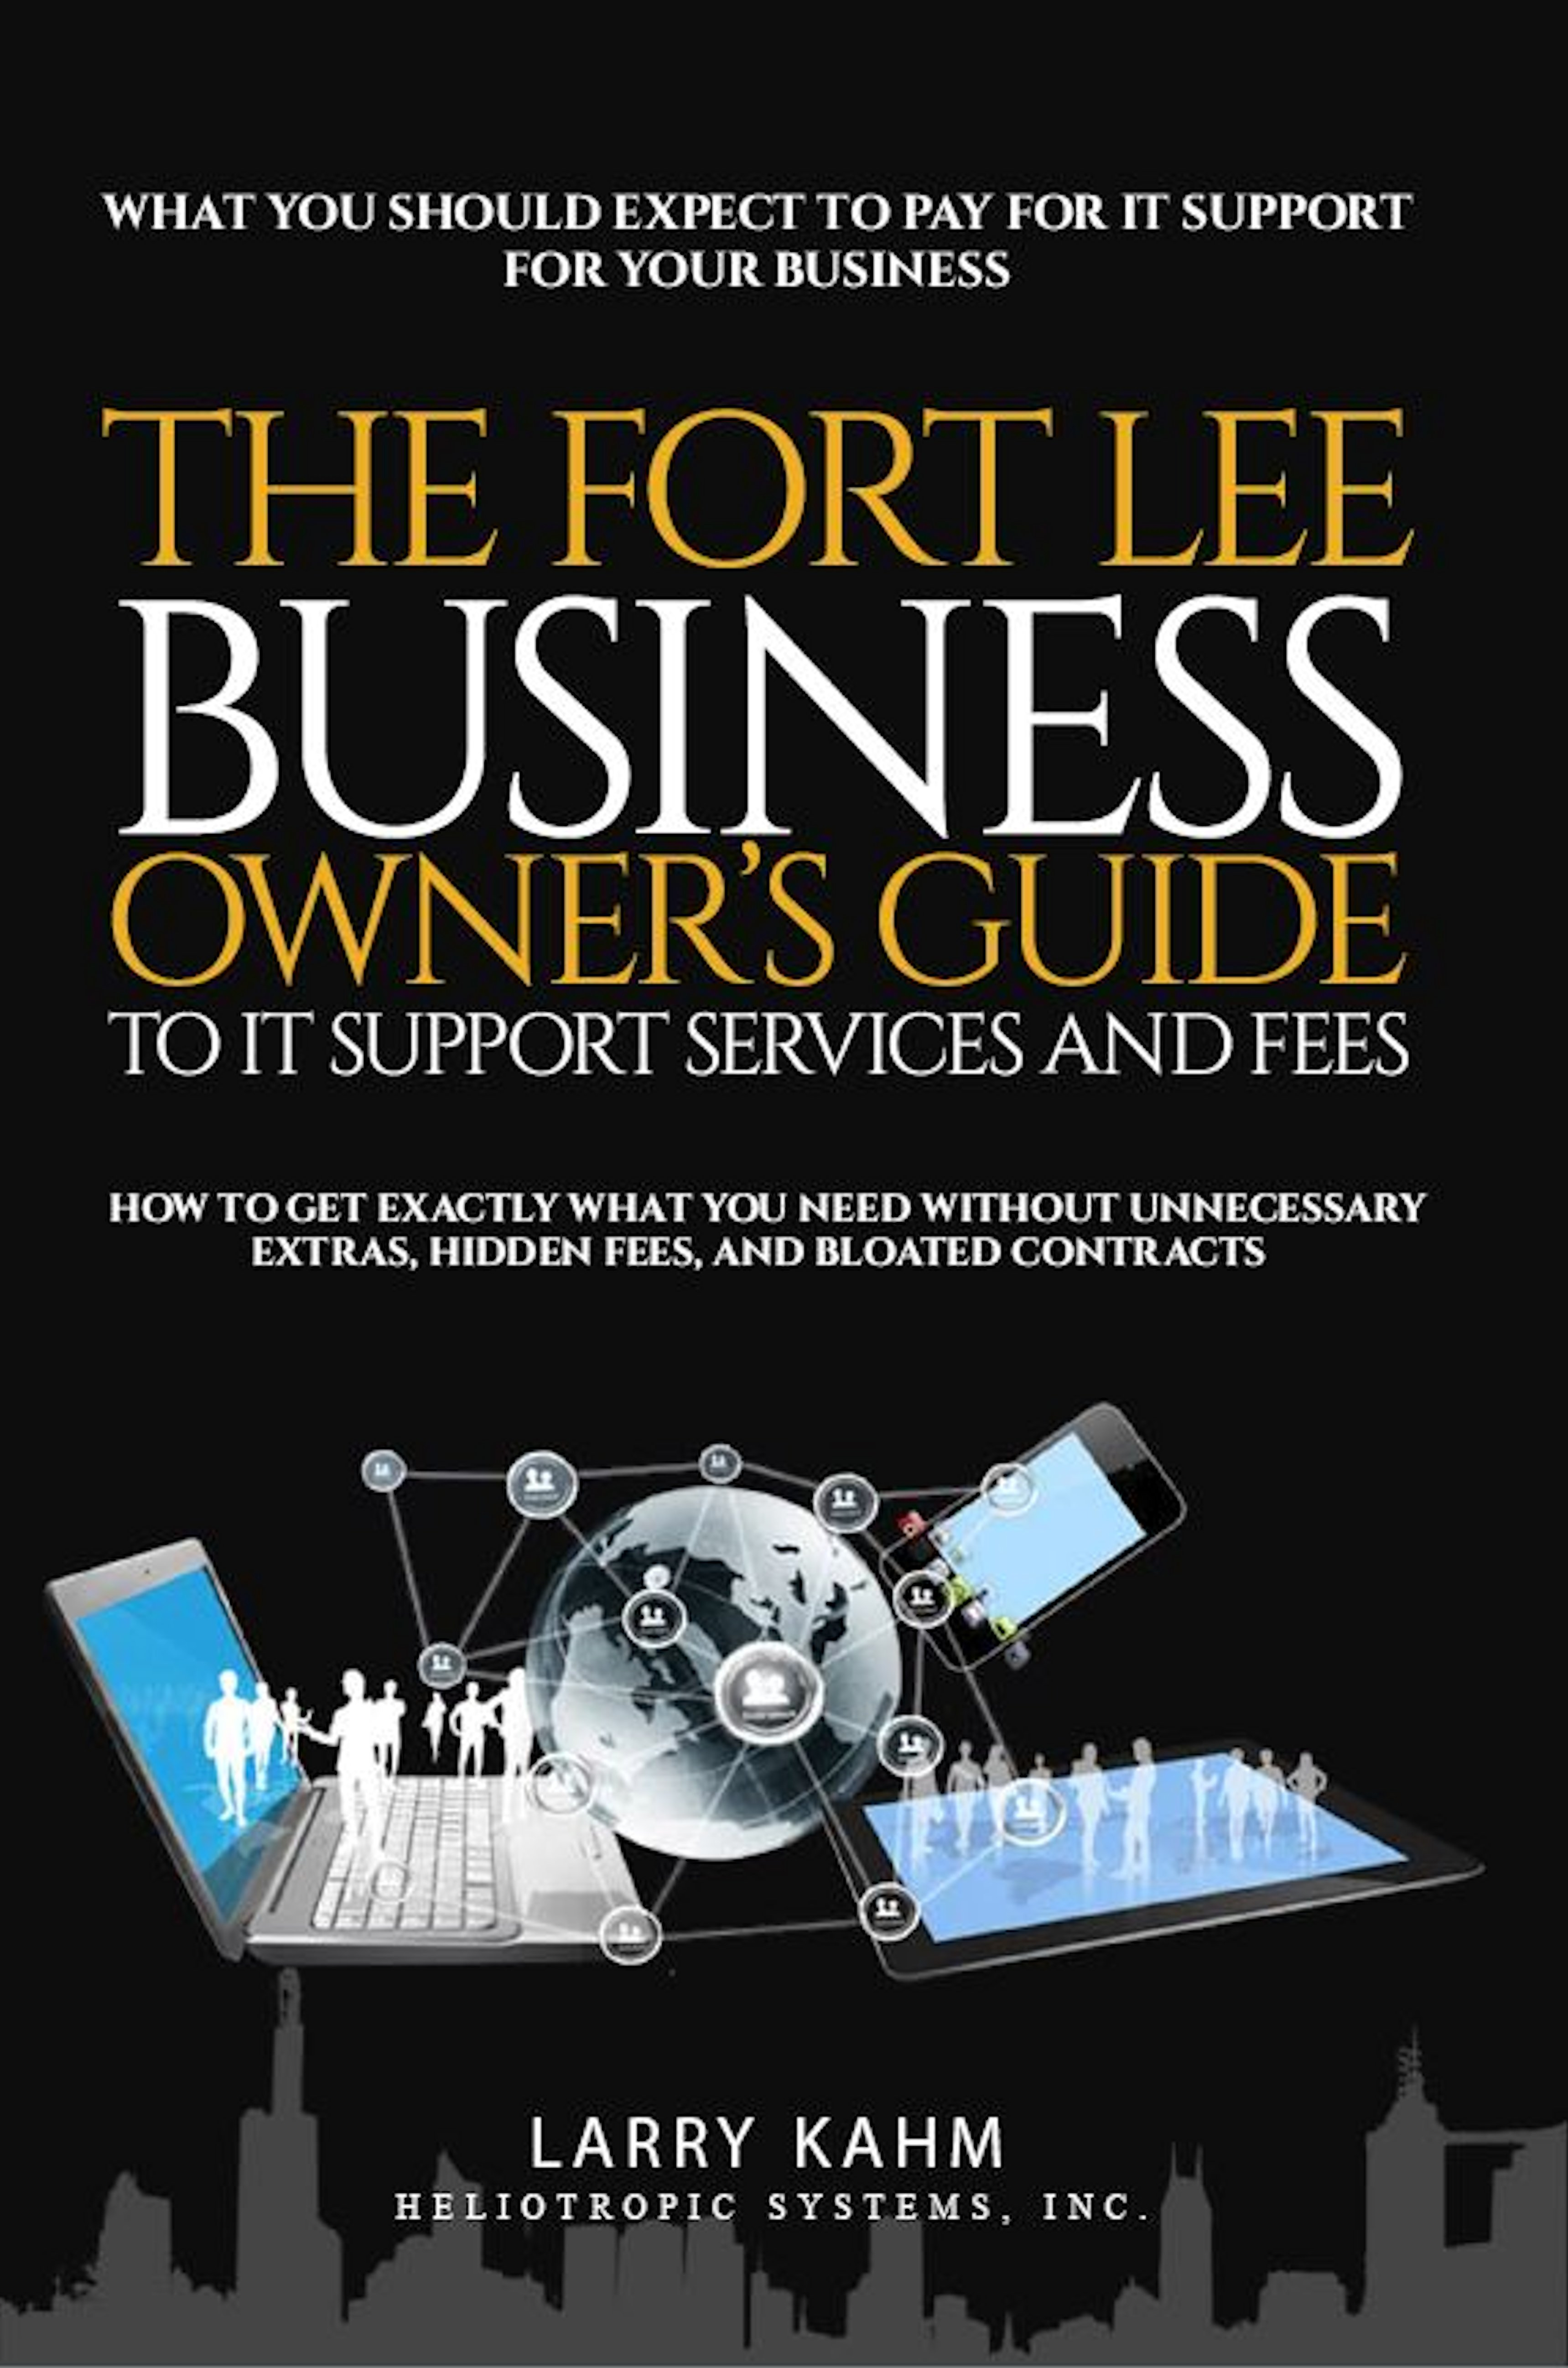 The Fort Lee Business Owner's Guide To IT Support Services And Fees